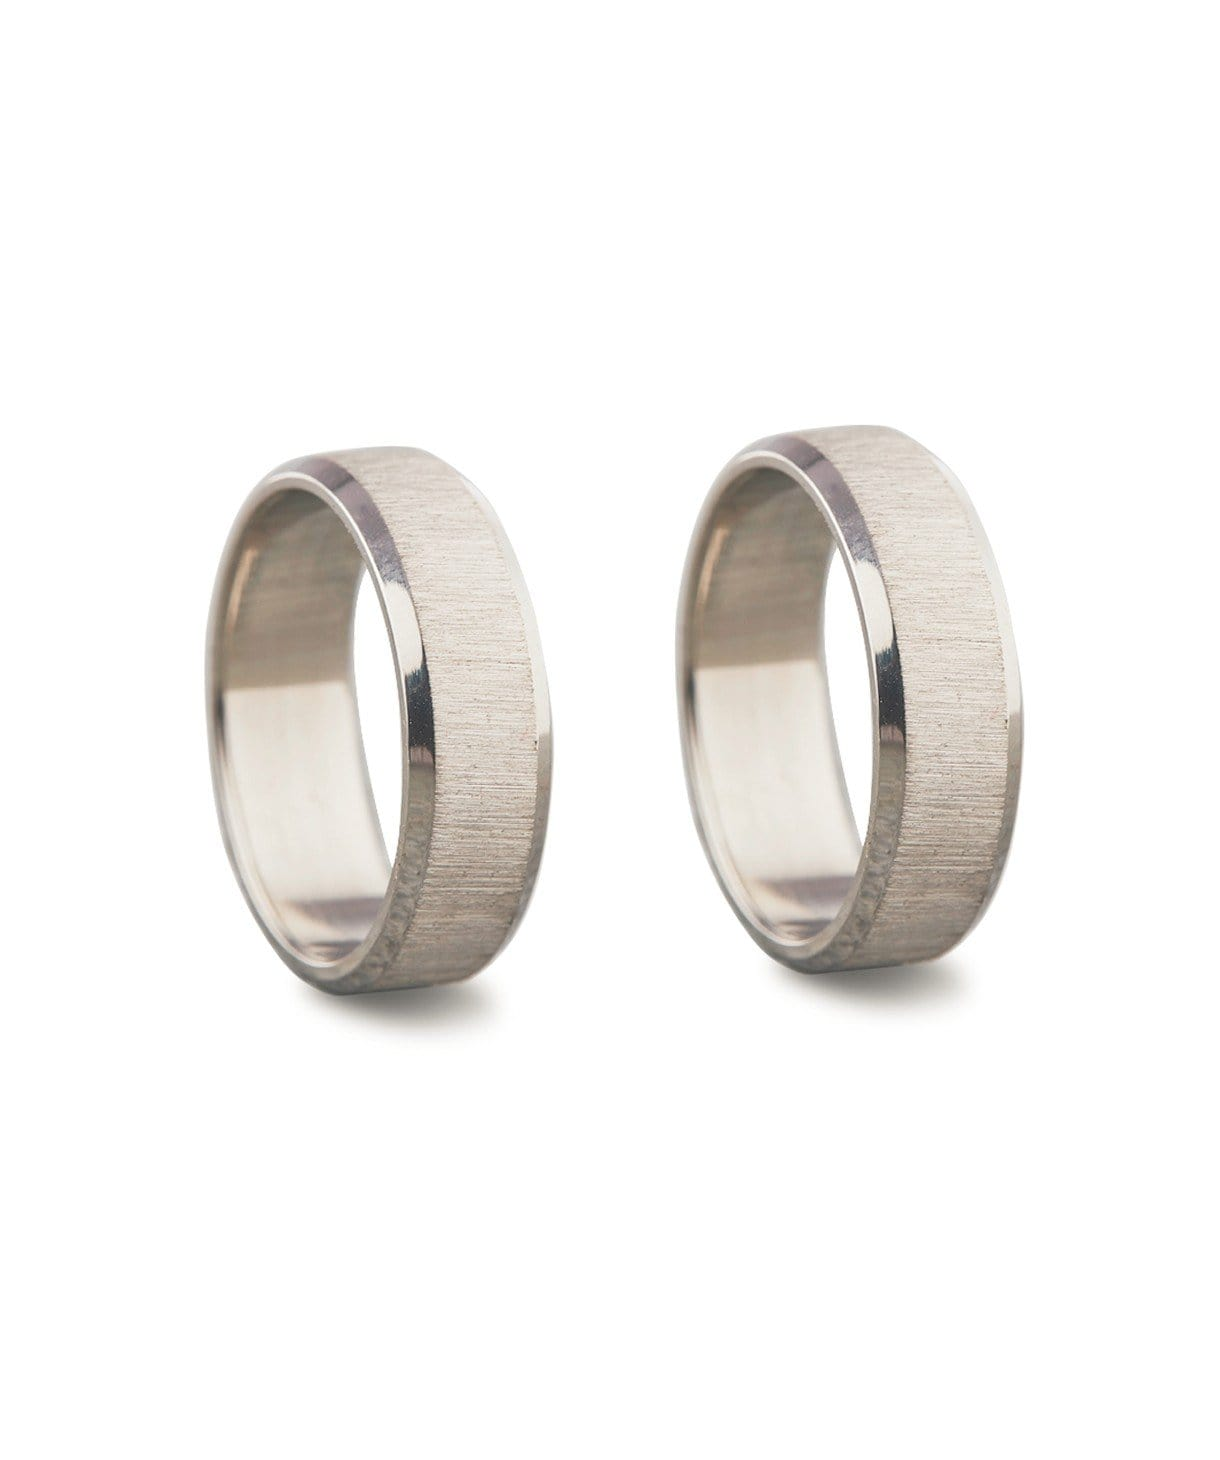 Dual Tone Ring Set - Uptownie